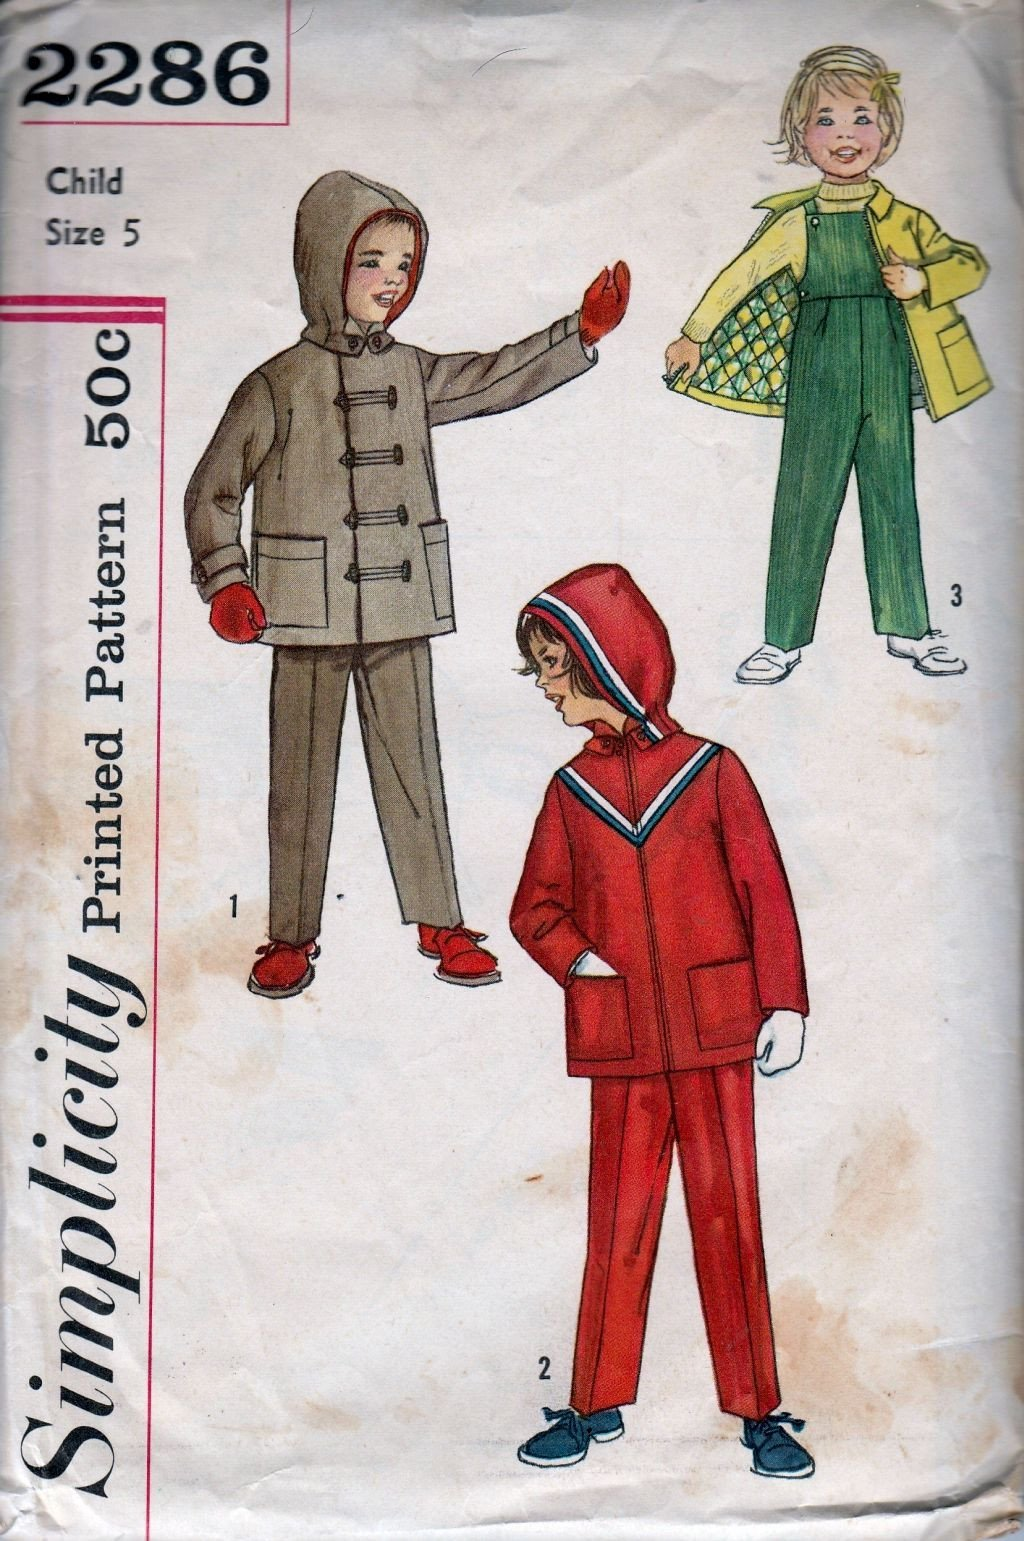 Simplicity 2286 Vintage 1950's Sewing Pattern Childrens' Jacket Suspender Pants - VintageStitching - Vintage Sewing Patterns